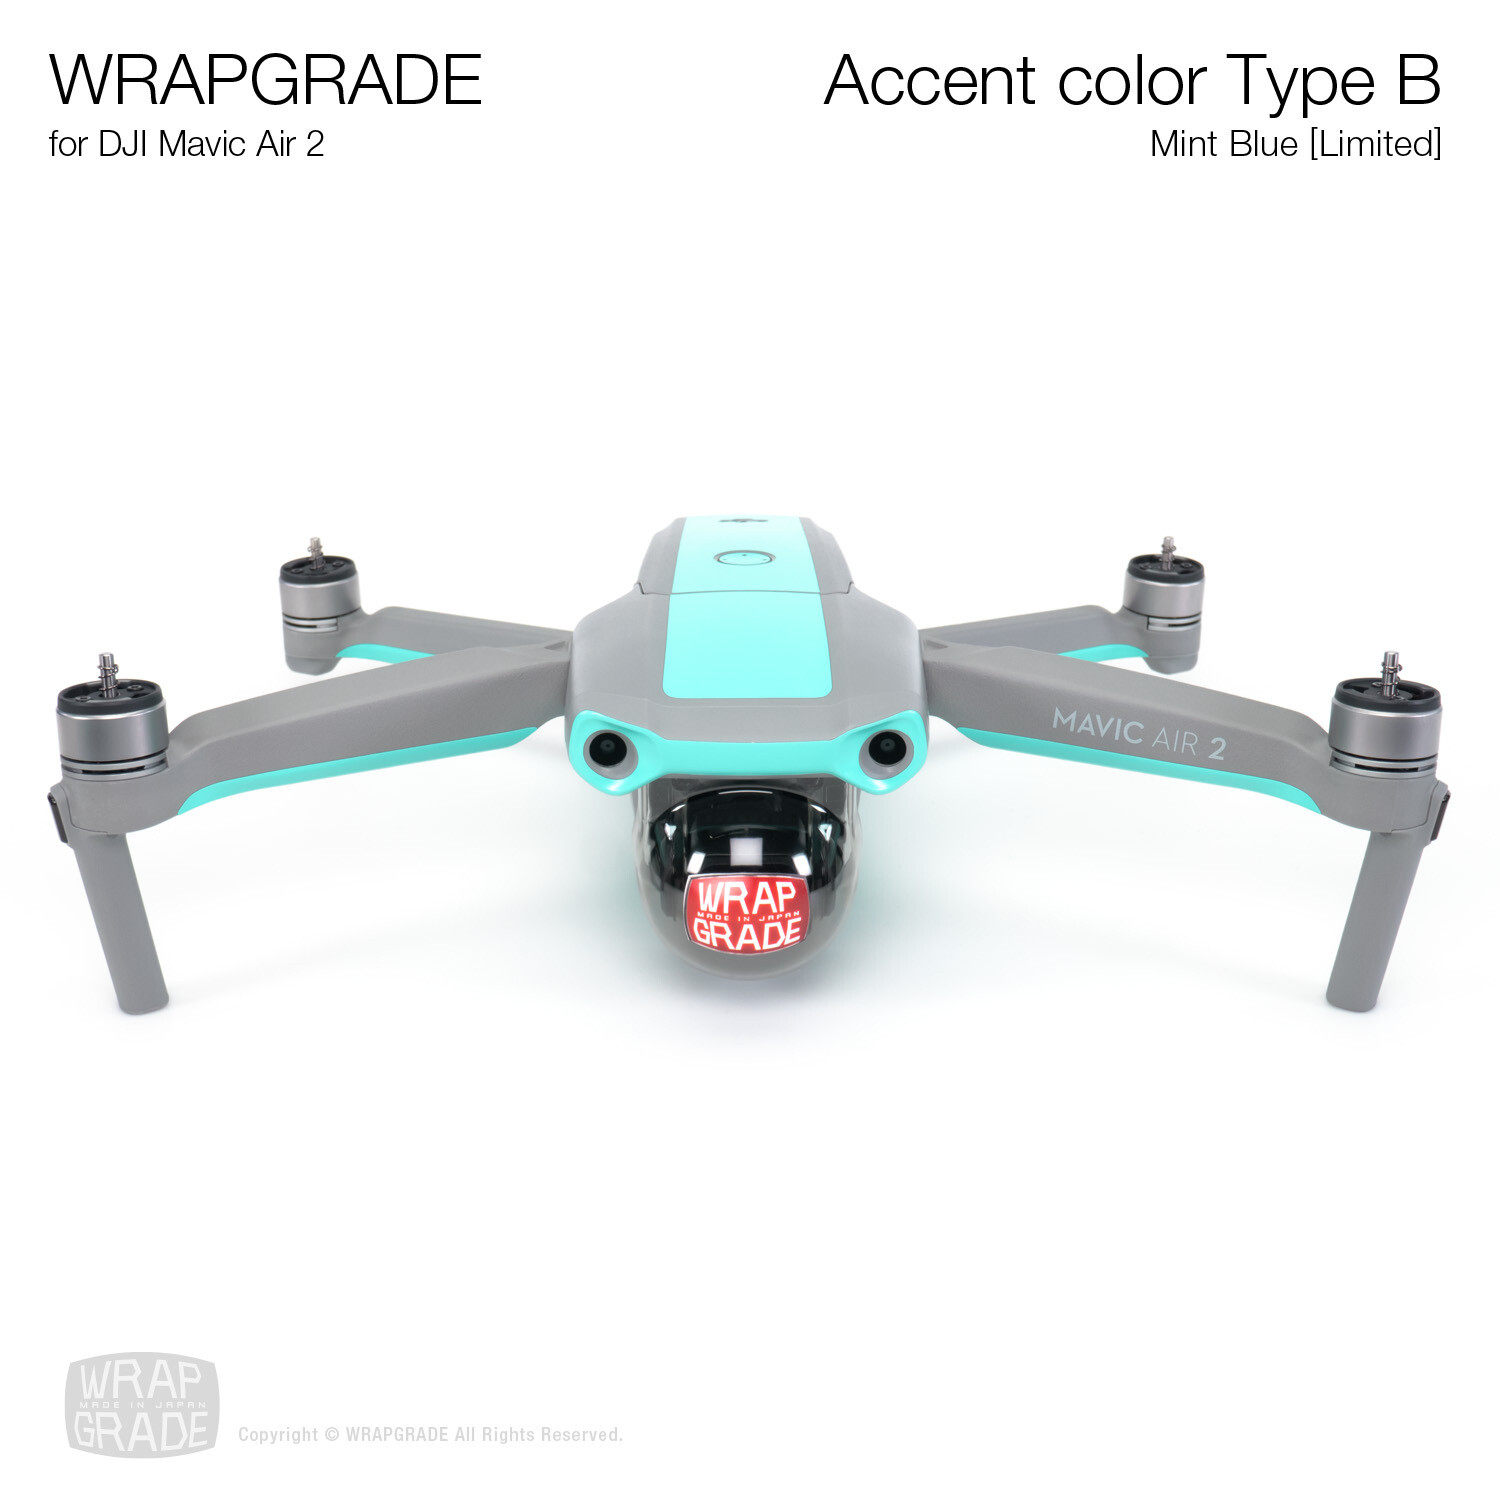 Wrapgrade for DJI Mavic Air 2 | Accent Color B (MINT BLUE)